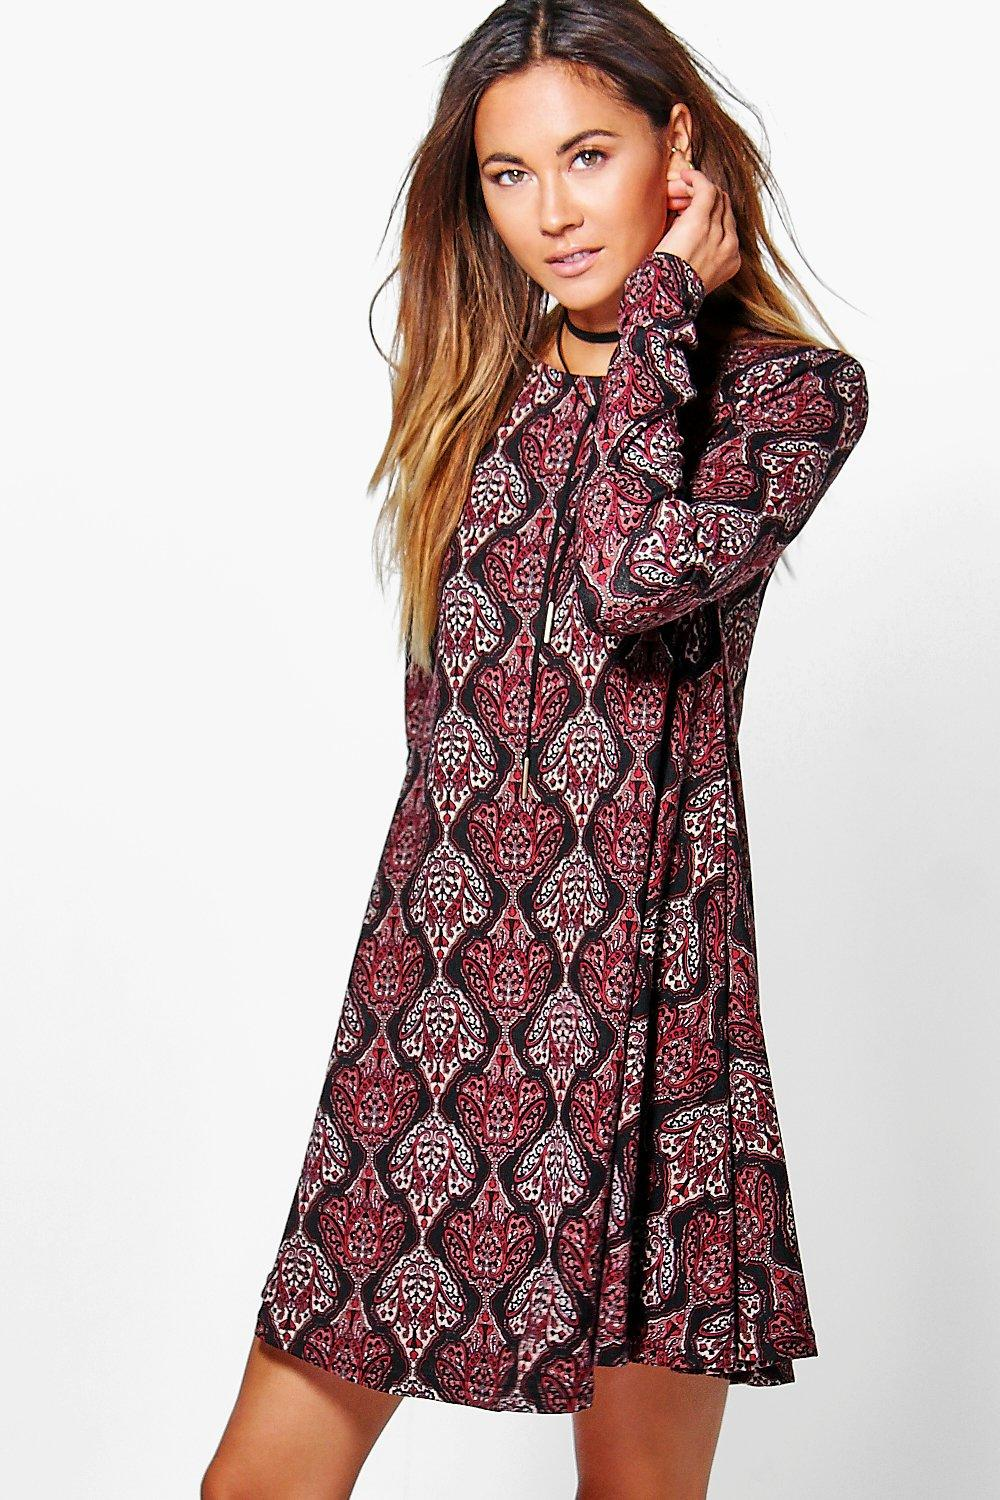 Maddy Paisley Brushed Knit Swing Dress